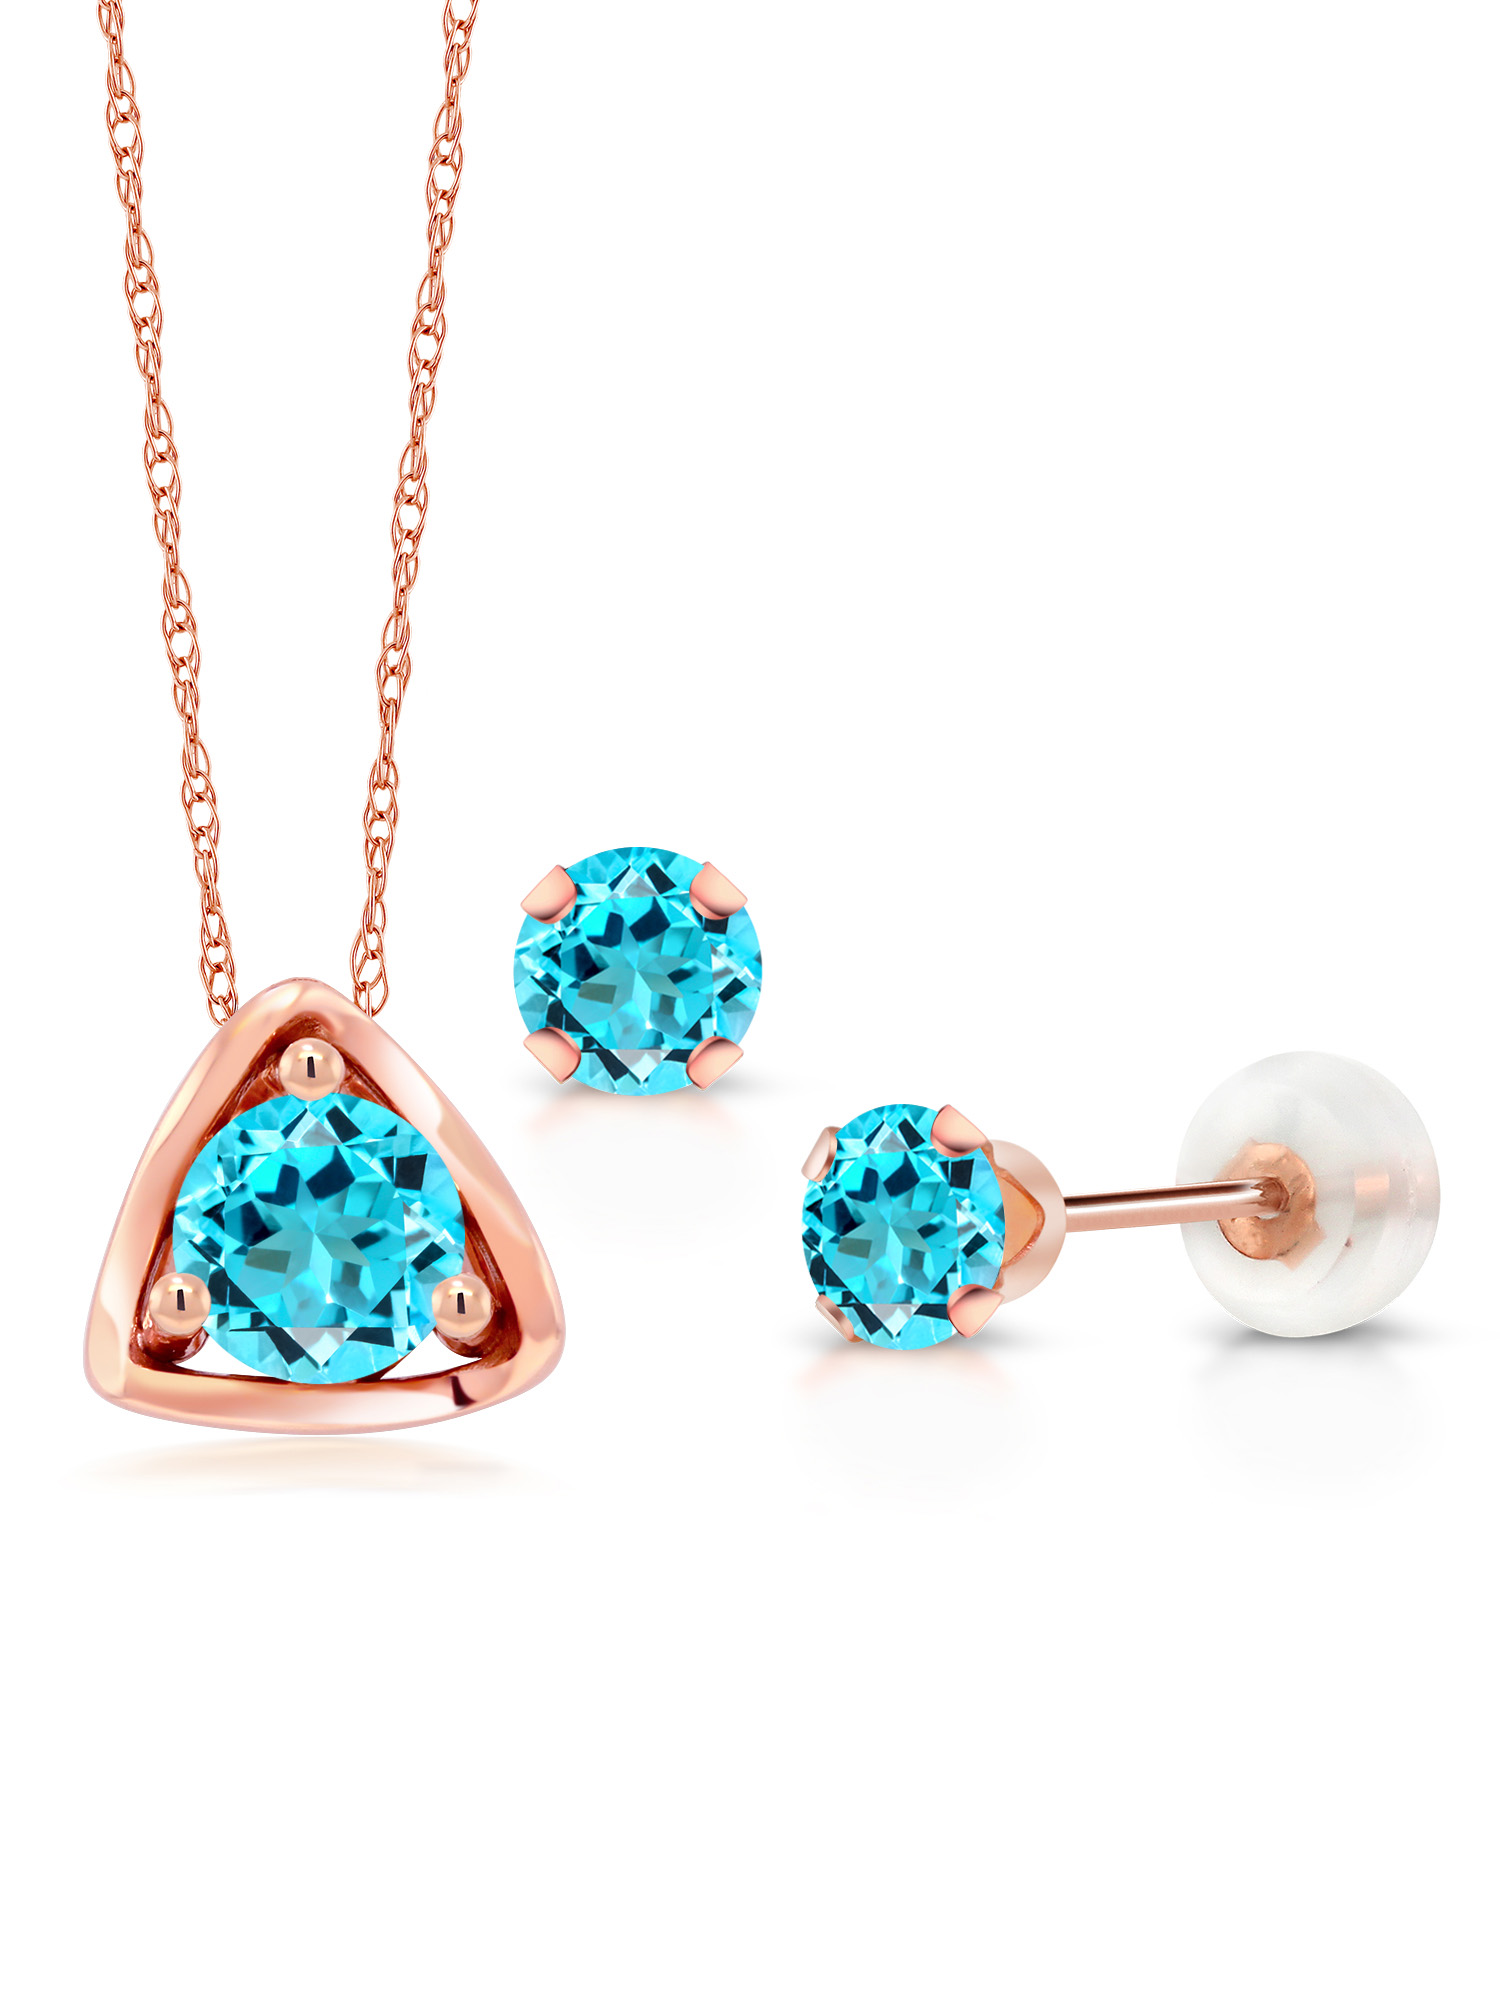 1.21 Ct Round Swiss Blue Topaz 10K Rose Gold Pendant Earrings Set by